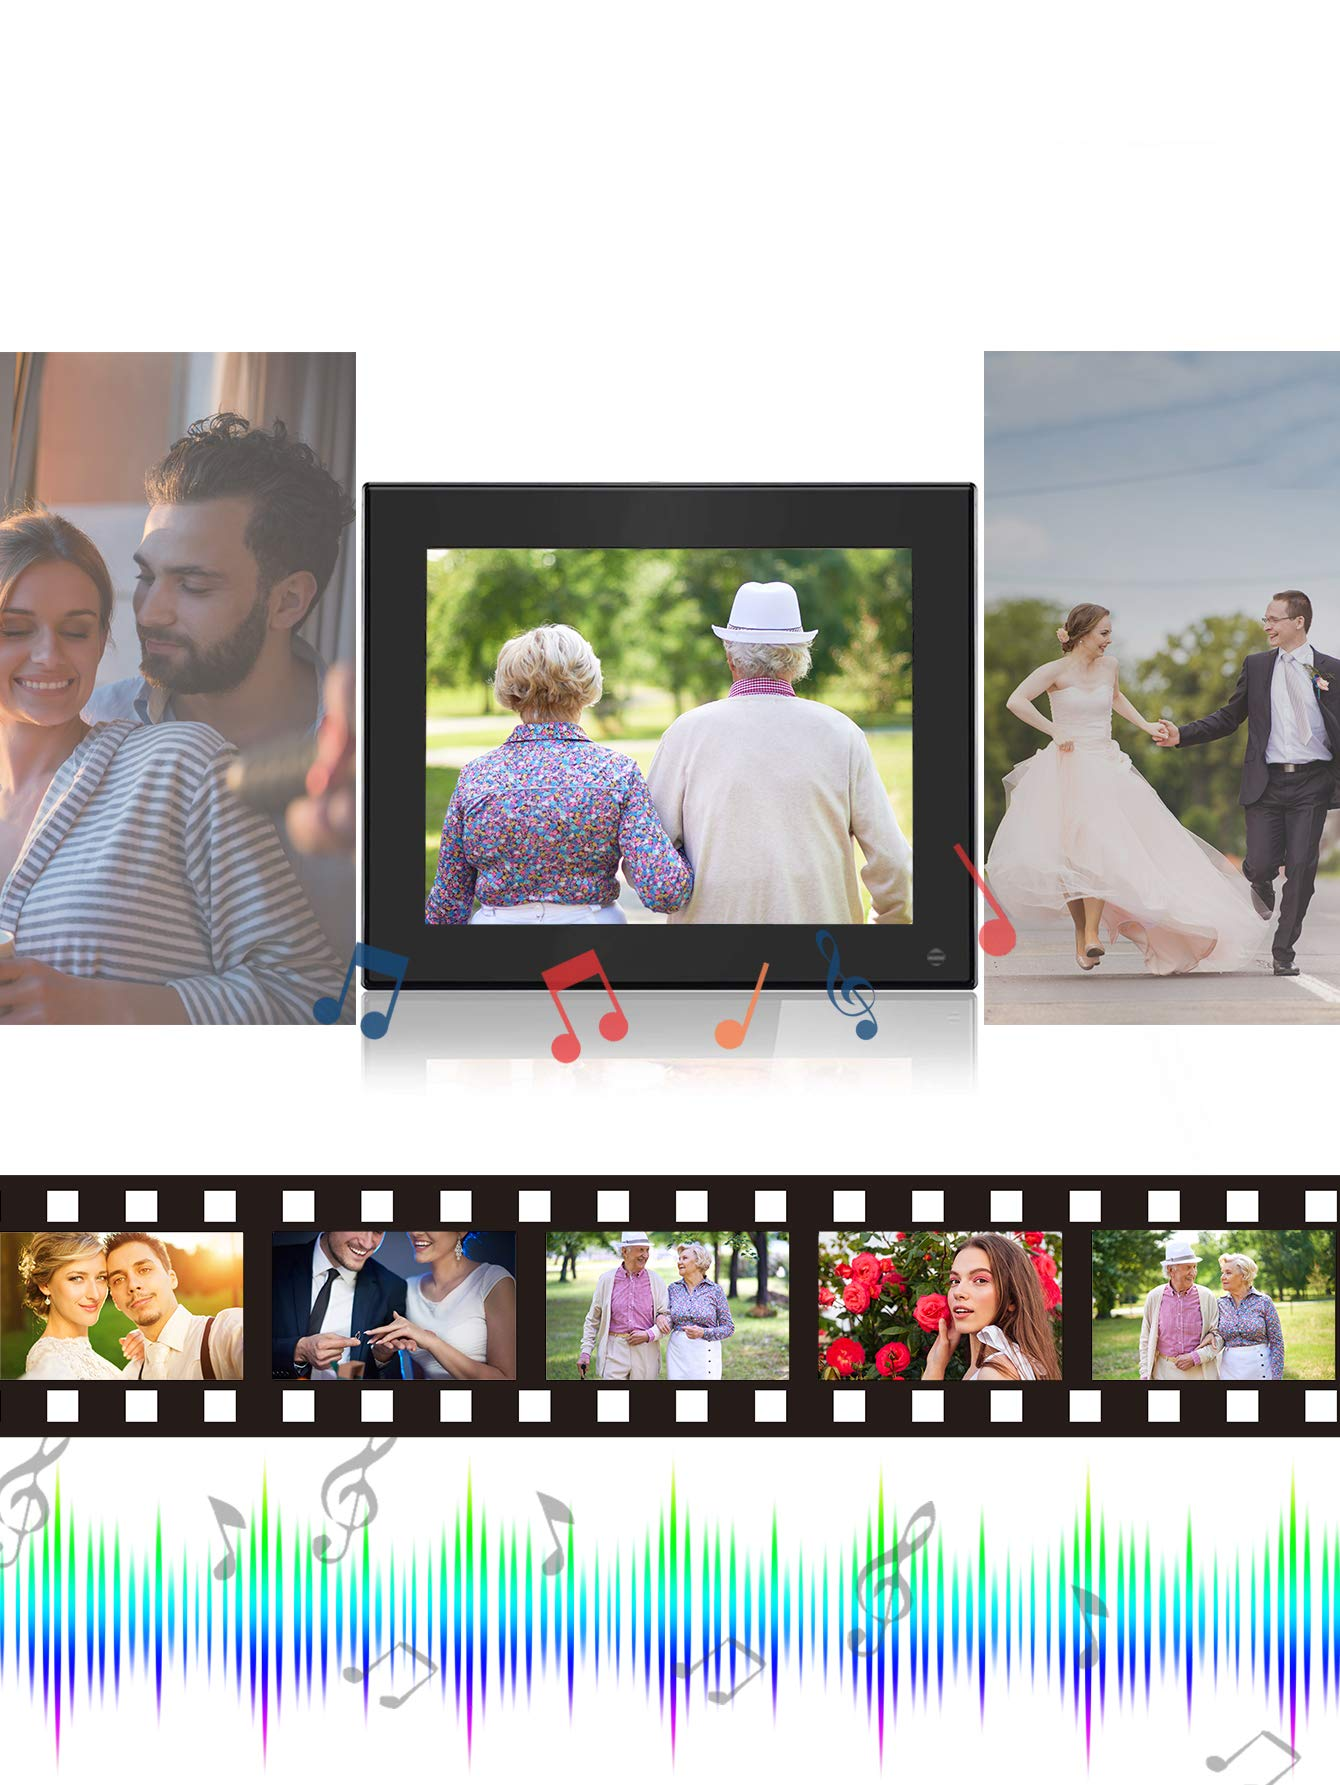 BSIMB Digital Photo Frame Digital Picture Frame 8 Inch 1024×768 Resolution Display with Calendar,Music,Video and USB,SD Card and Remote Control(M03 Black) by Bsimb (Image #5)